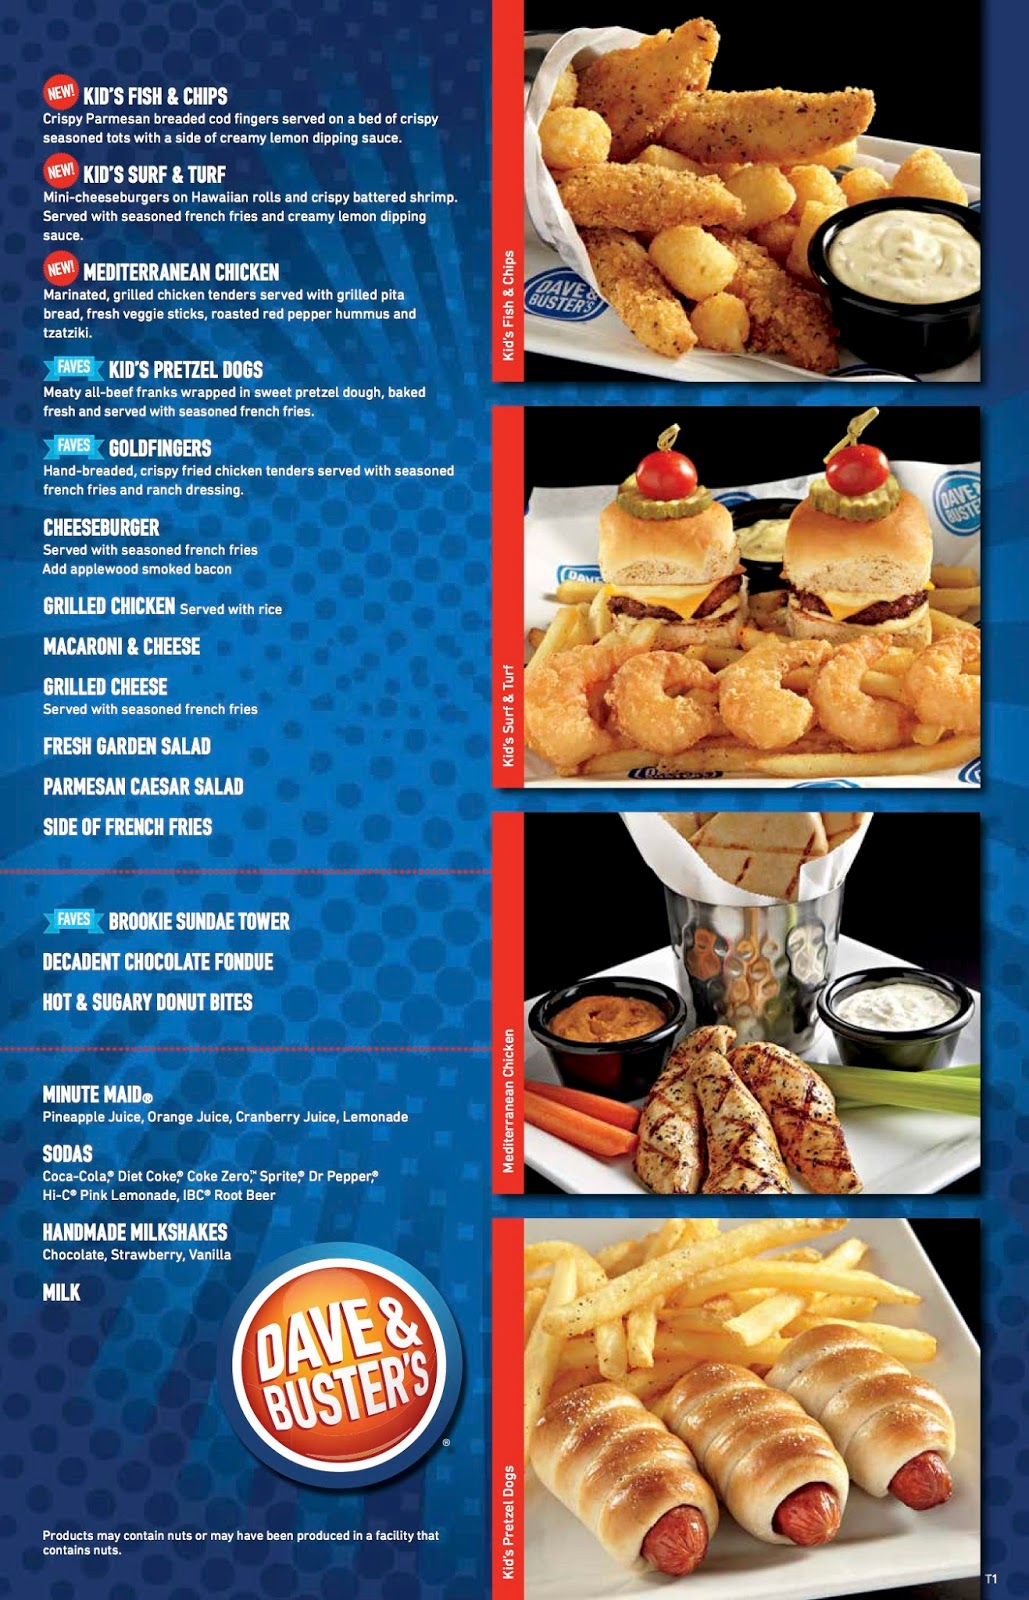 Dec 04, · Dave & Buster's Menu Prices There are plenty of snacks that can be shared with the whole group at Dave & Buster's. Dave & Buster's menu prices may seem to be a little on the large side at first glance, but this is party food.